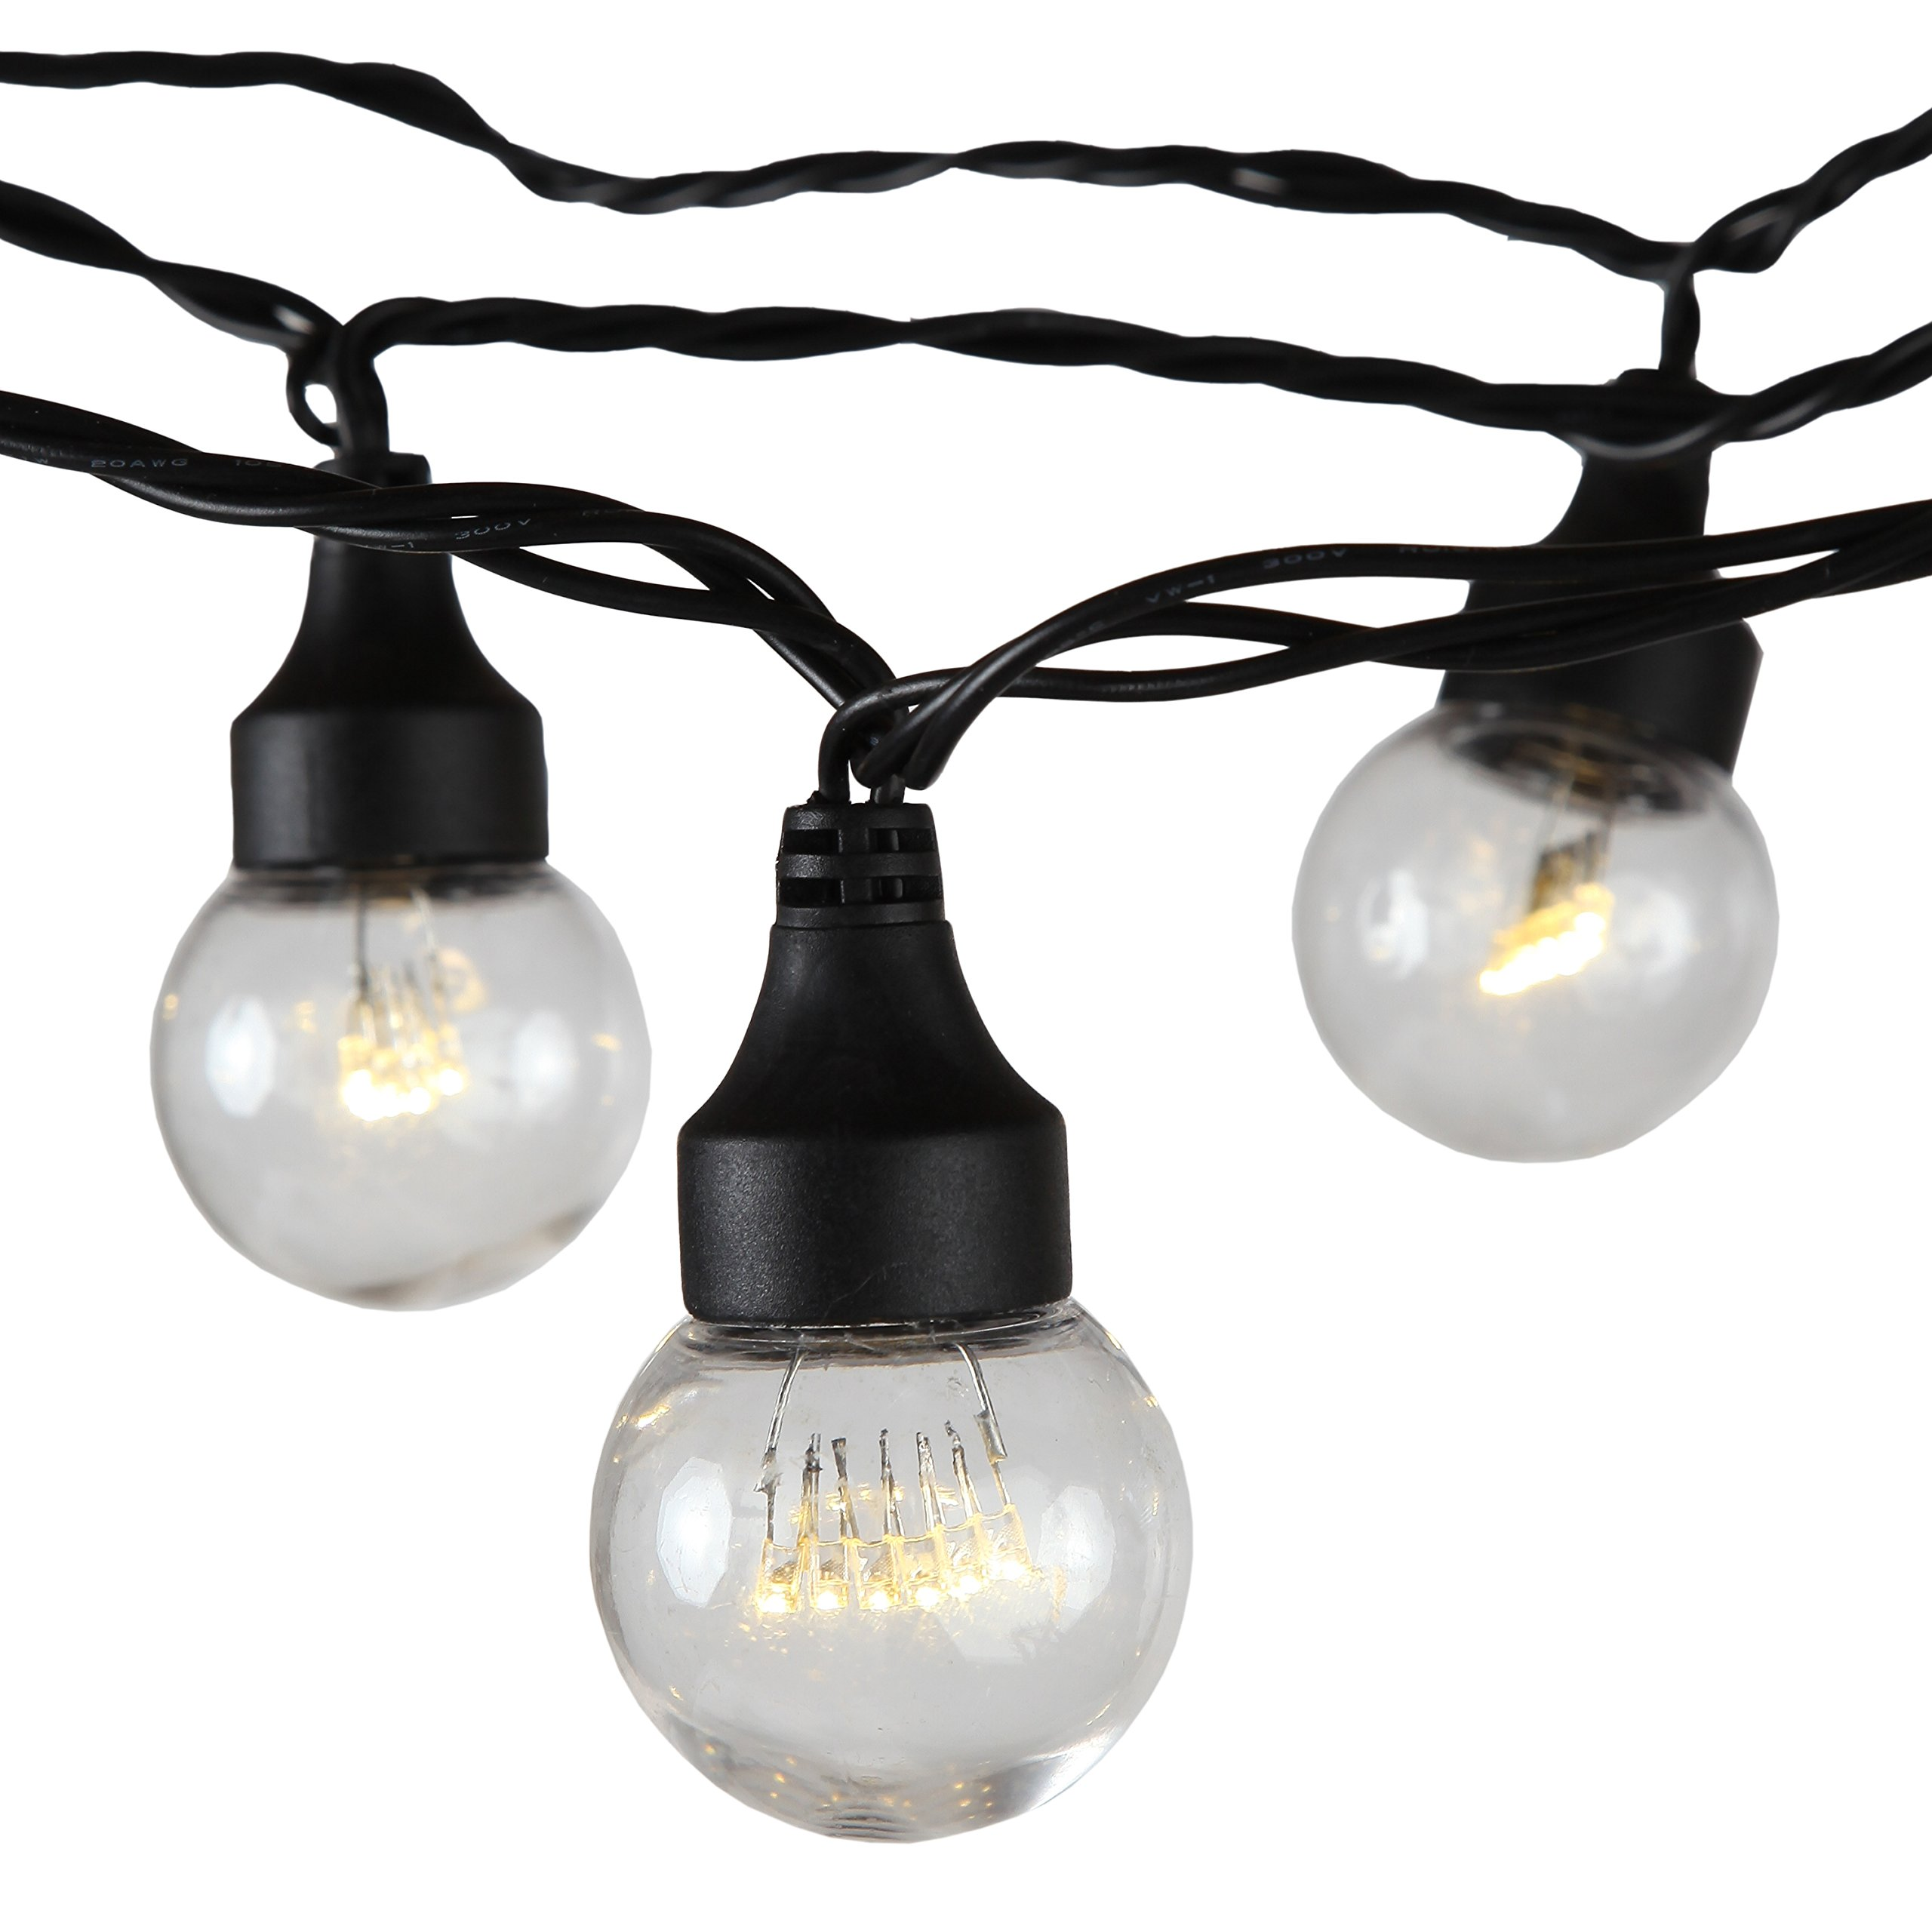 Brightech - Ambience LED - Warm White LED G45 Indoor / Outdoor String Light Set with 15 Energy-Saving Bulbs made of Durable Plastic - LEDs Mimic the Bewitching Feel of Edison-style Incandescent Lights